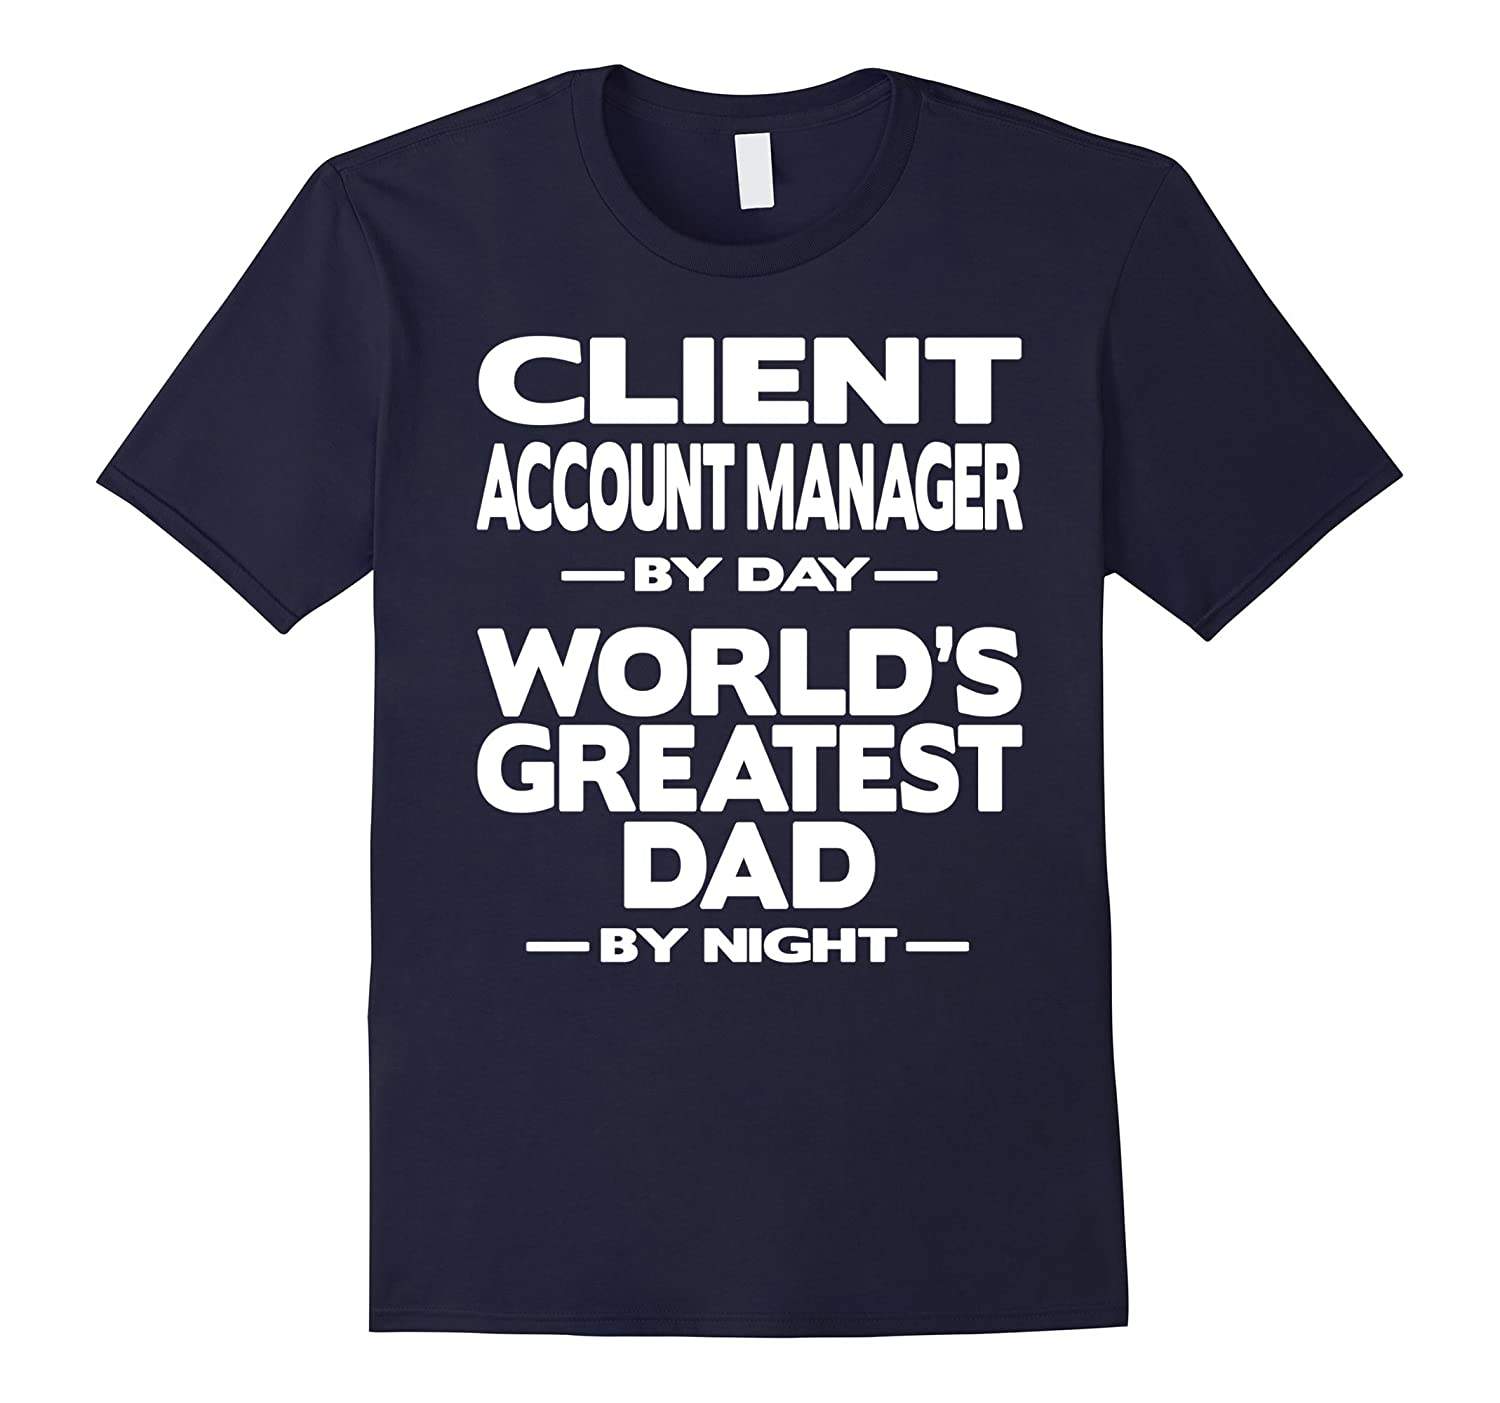 Client Account Manager Worlds Greatest Dad T-Shirt-TD